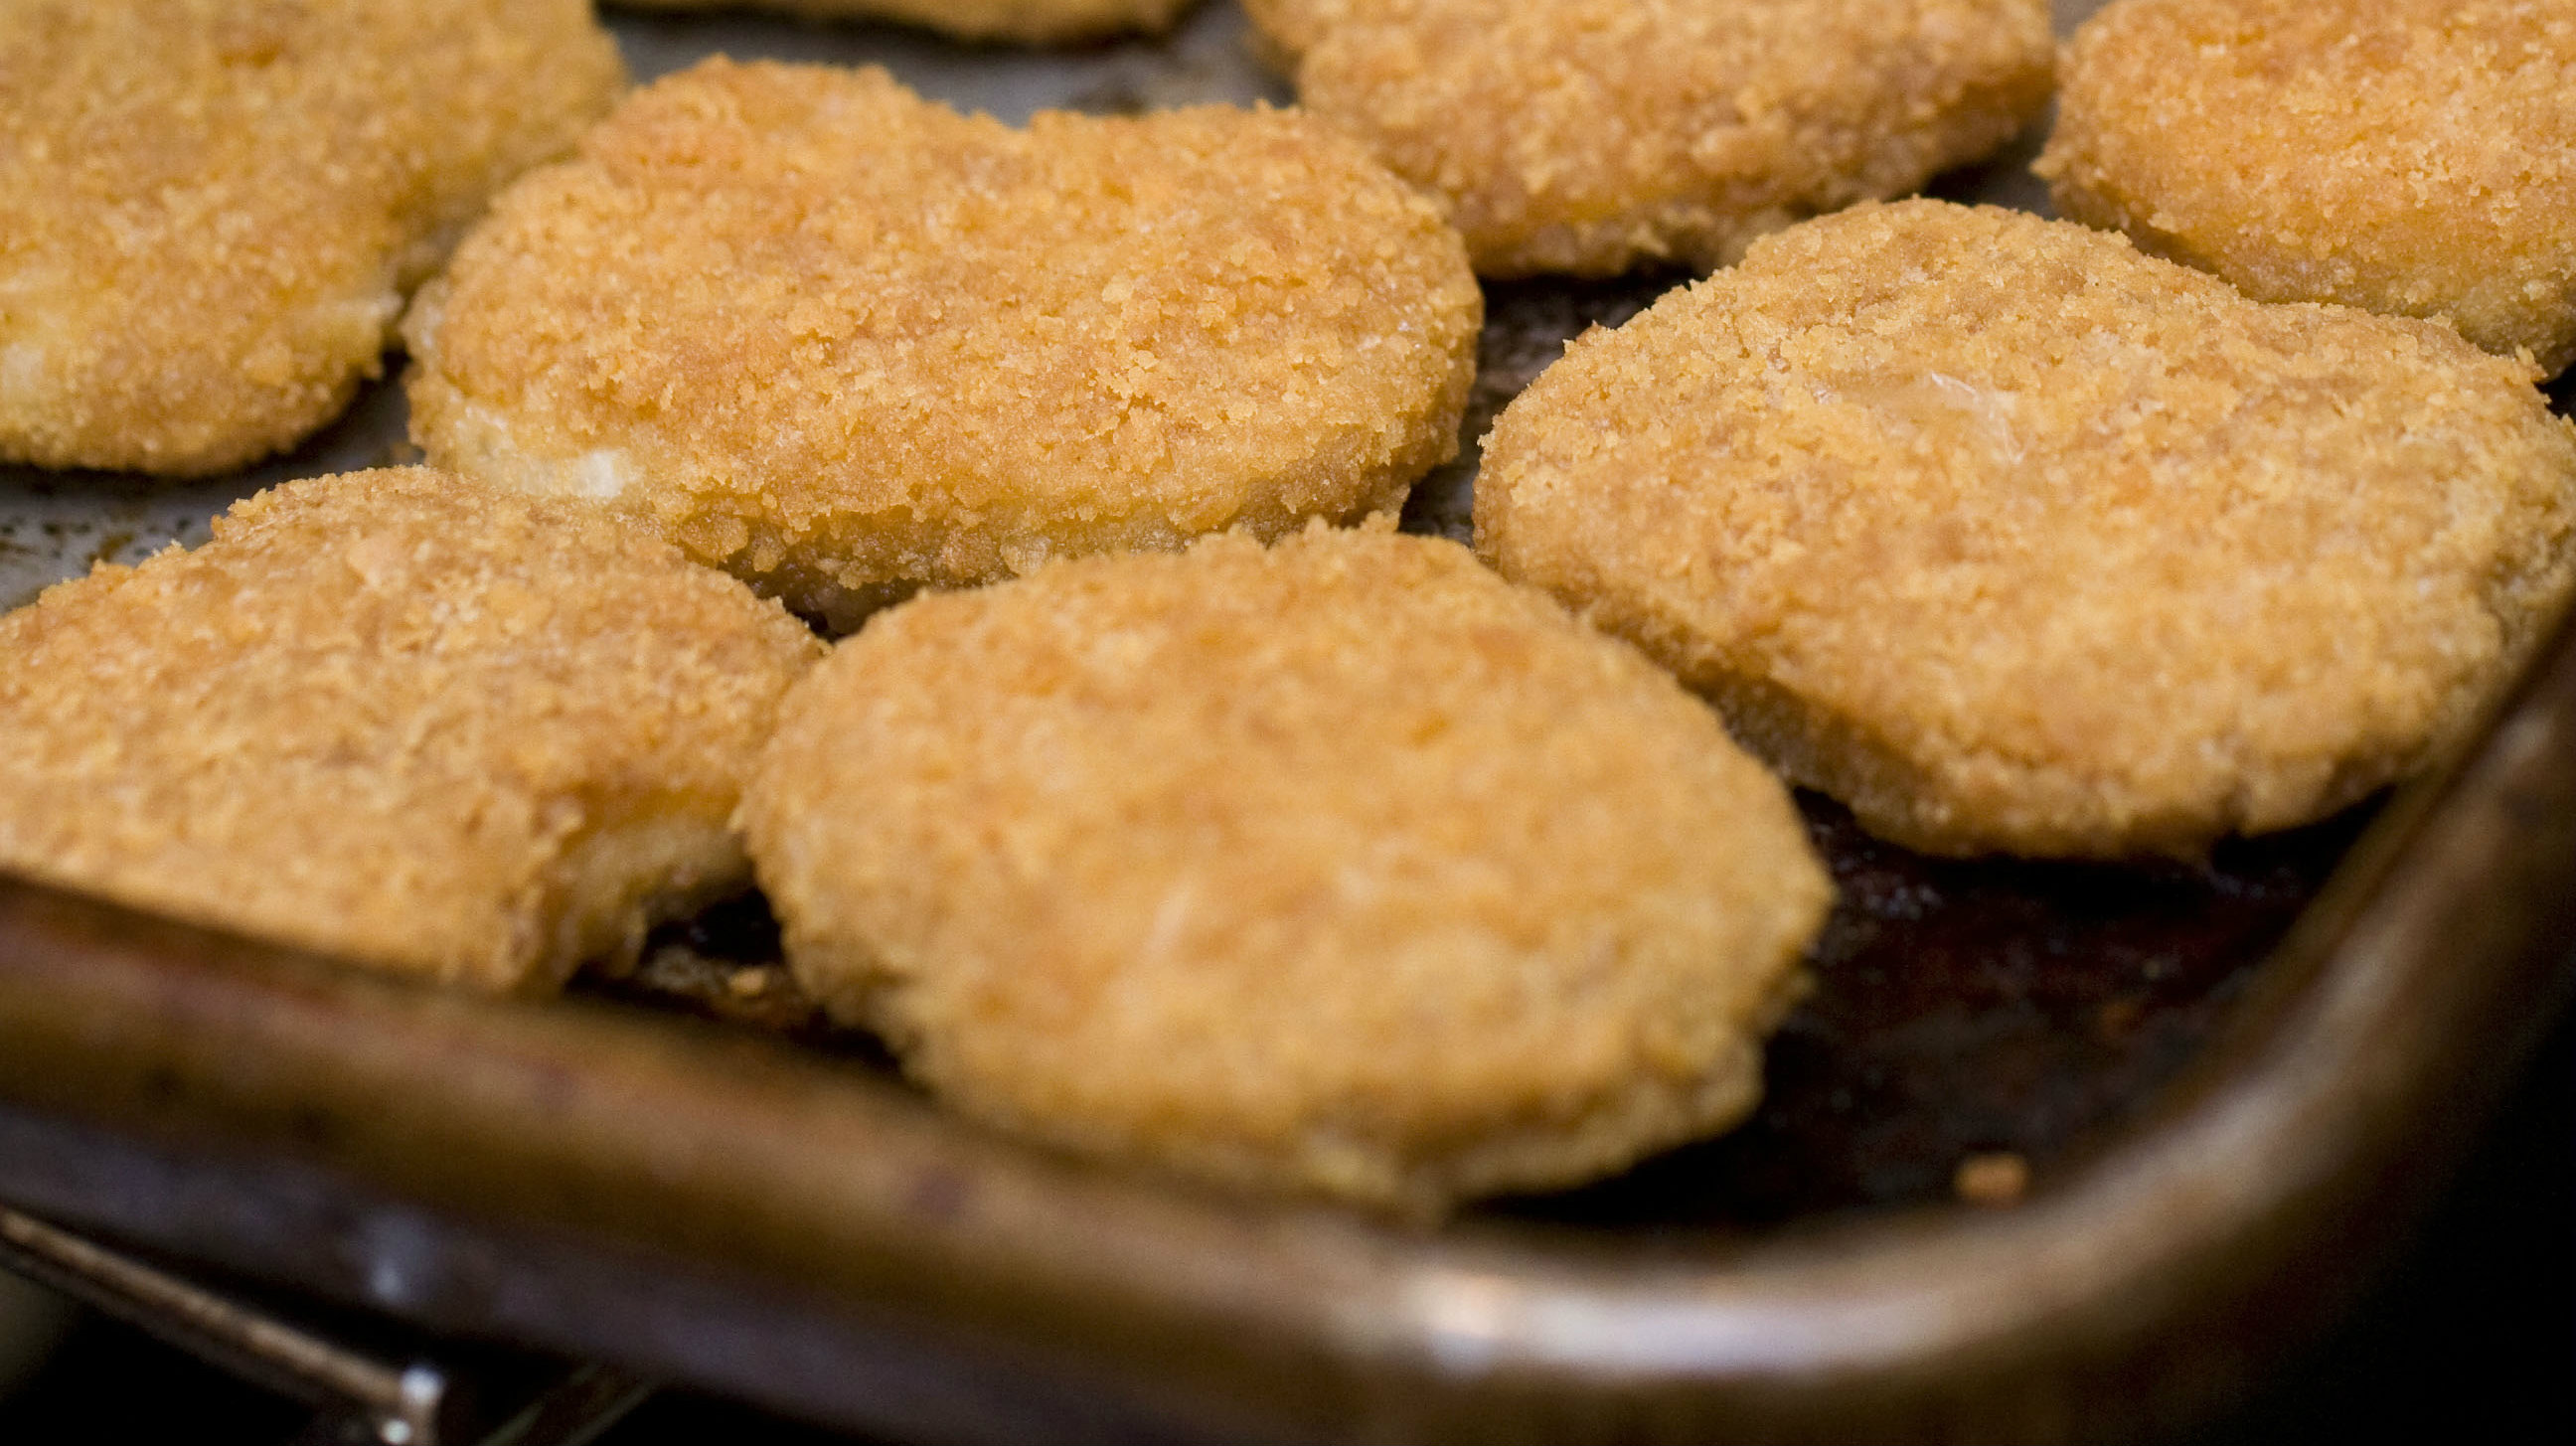 chicken-nuggets-oxfam-poultry-workers-processors 2